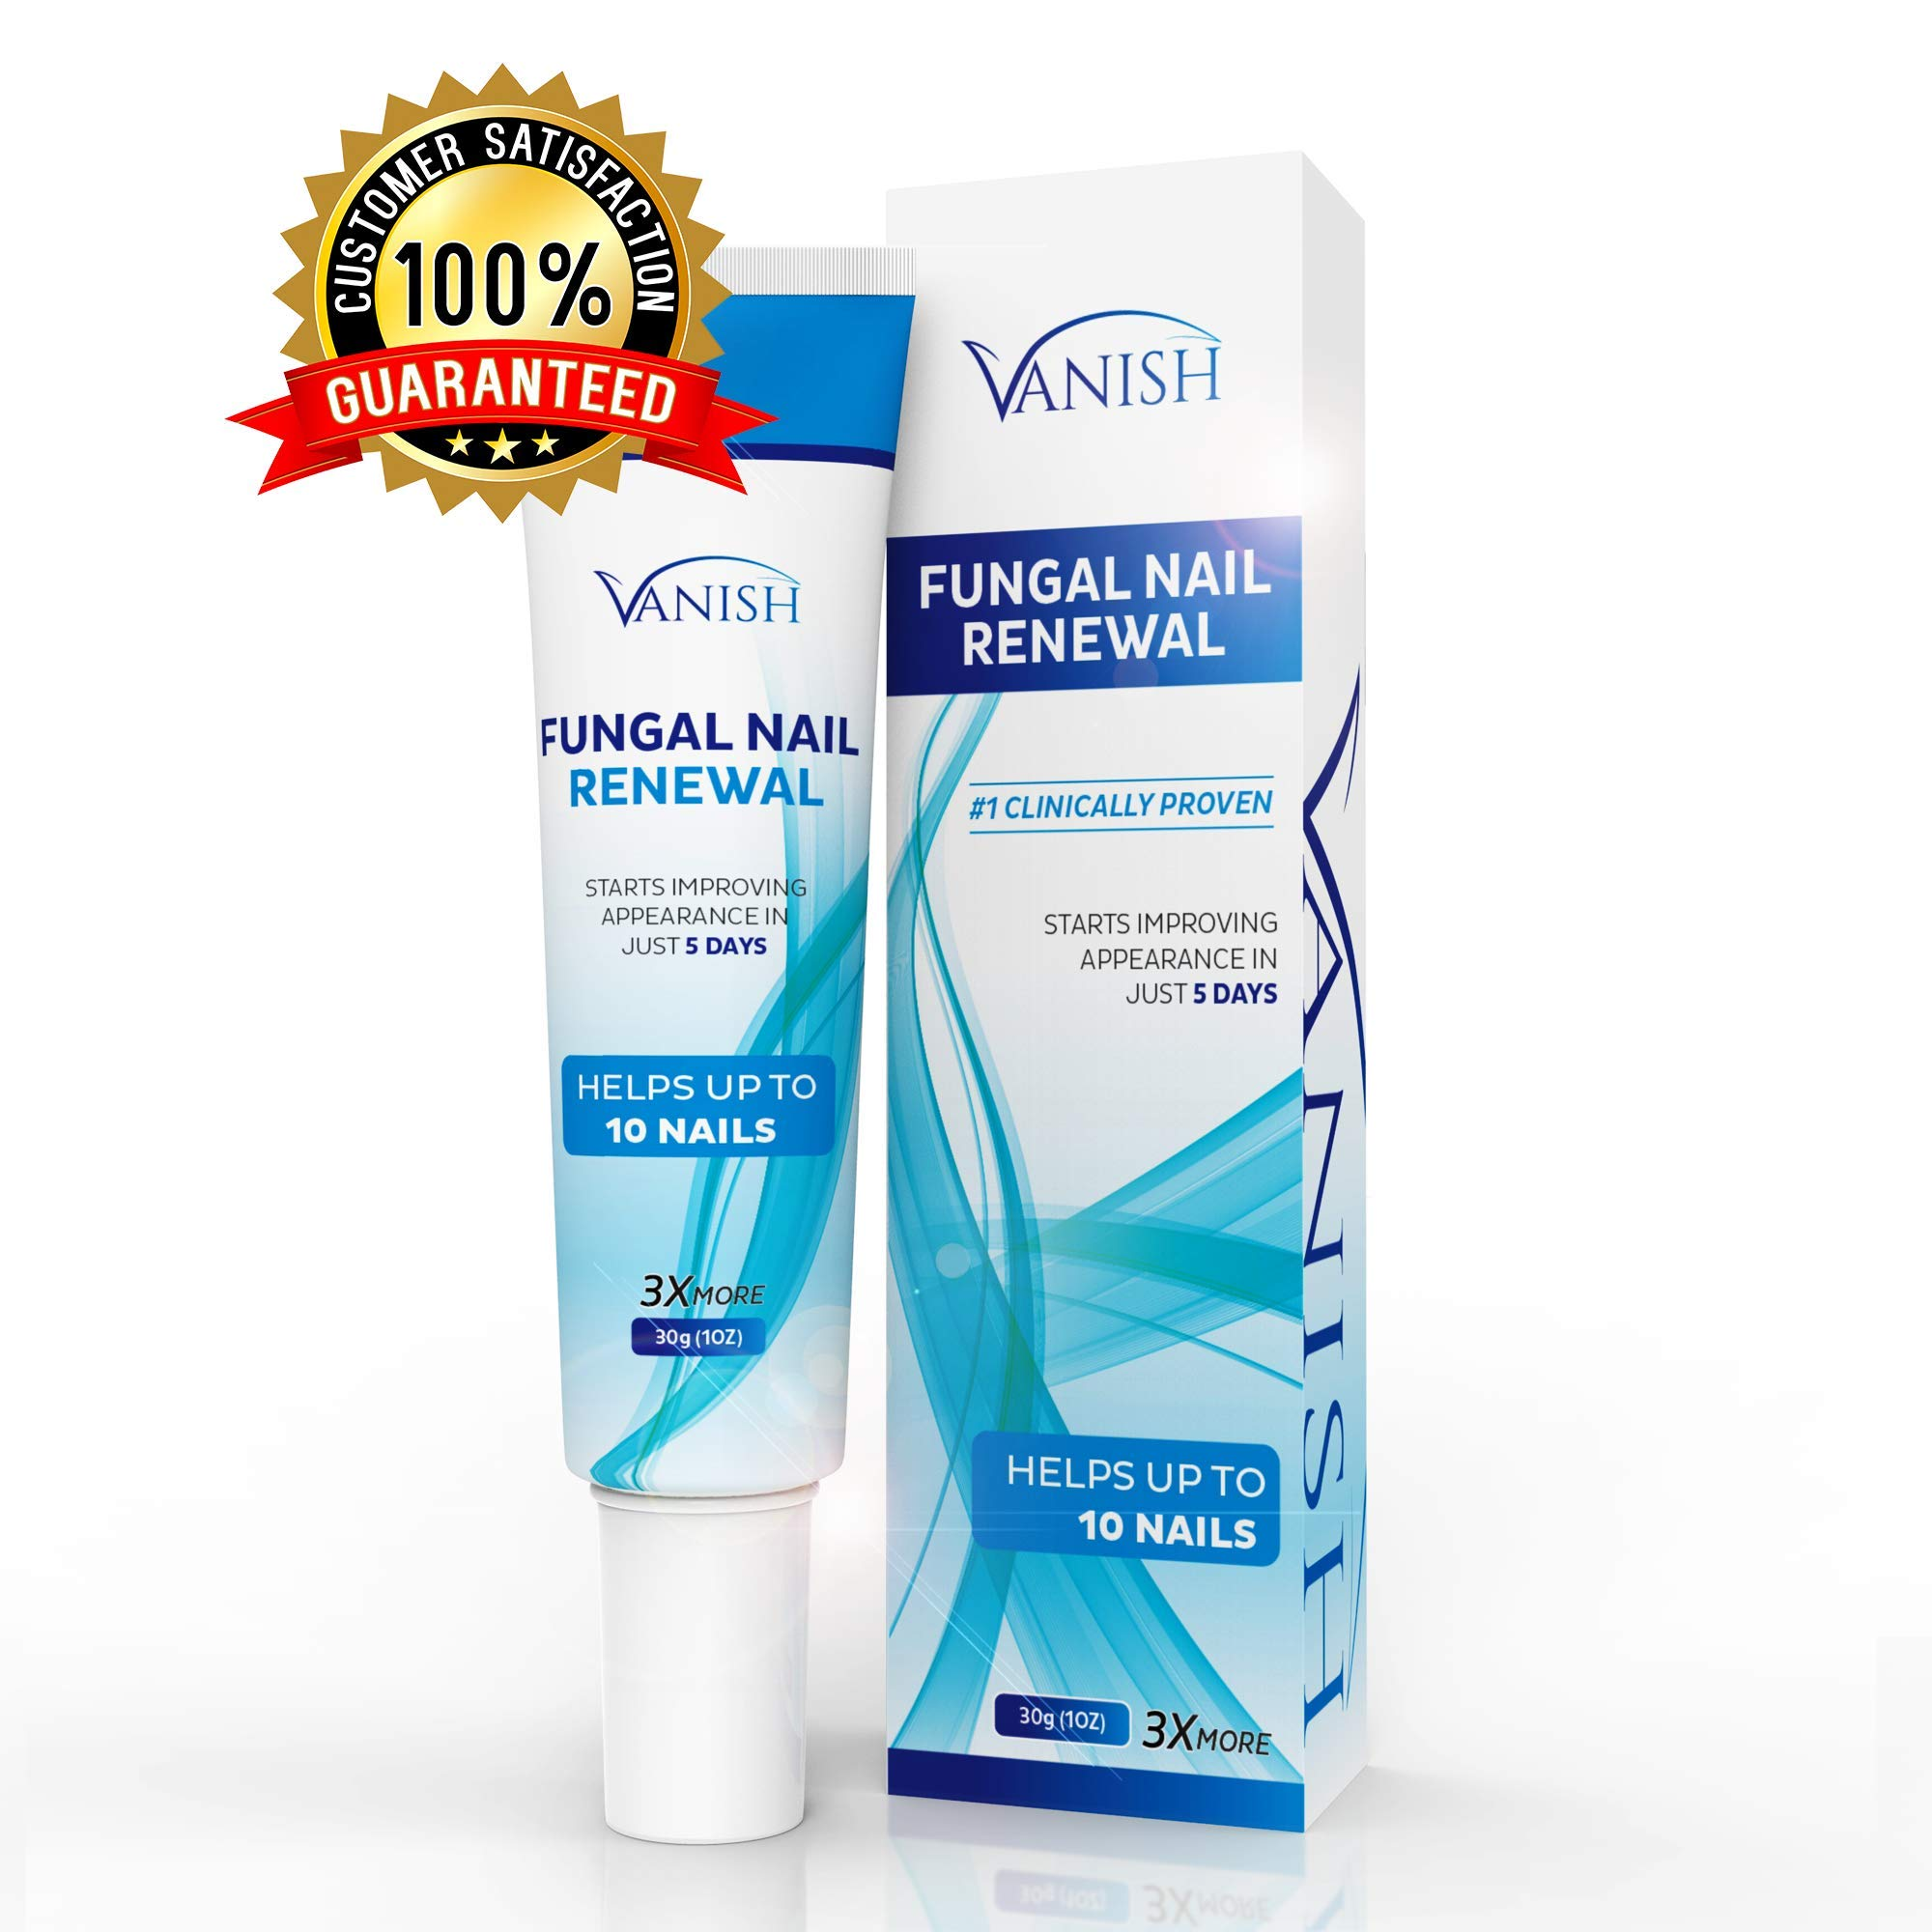 Vanish Fungal Nail Renewal, Nail Fungus Renewal Cream, Effective on Toenail and Fingernail Treatment | 3x more cream, Visible results in 5 days, 30ml | Helpful E-Book Included